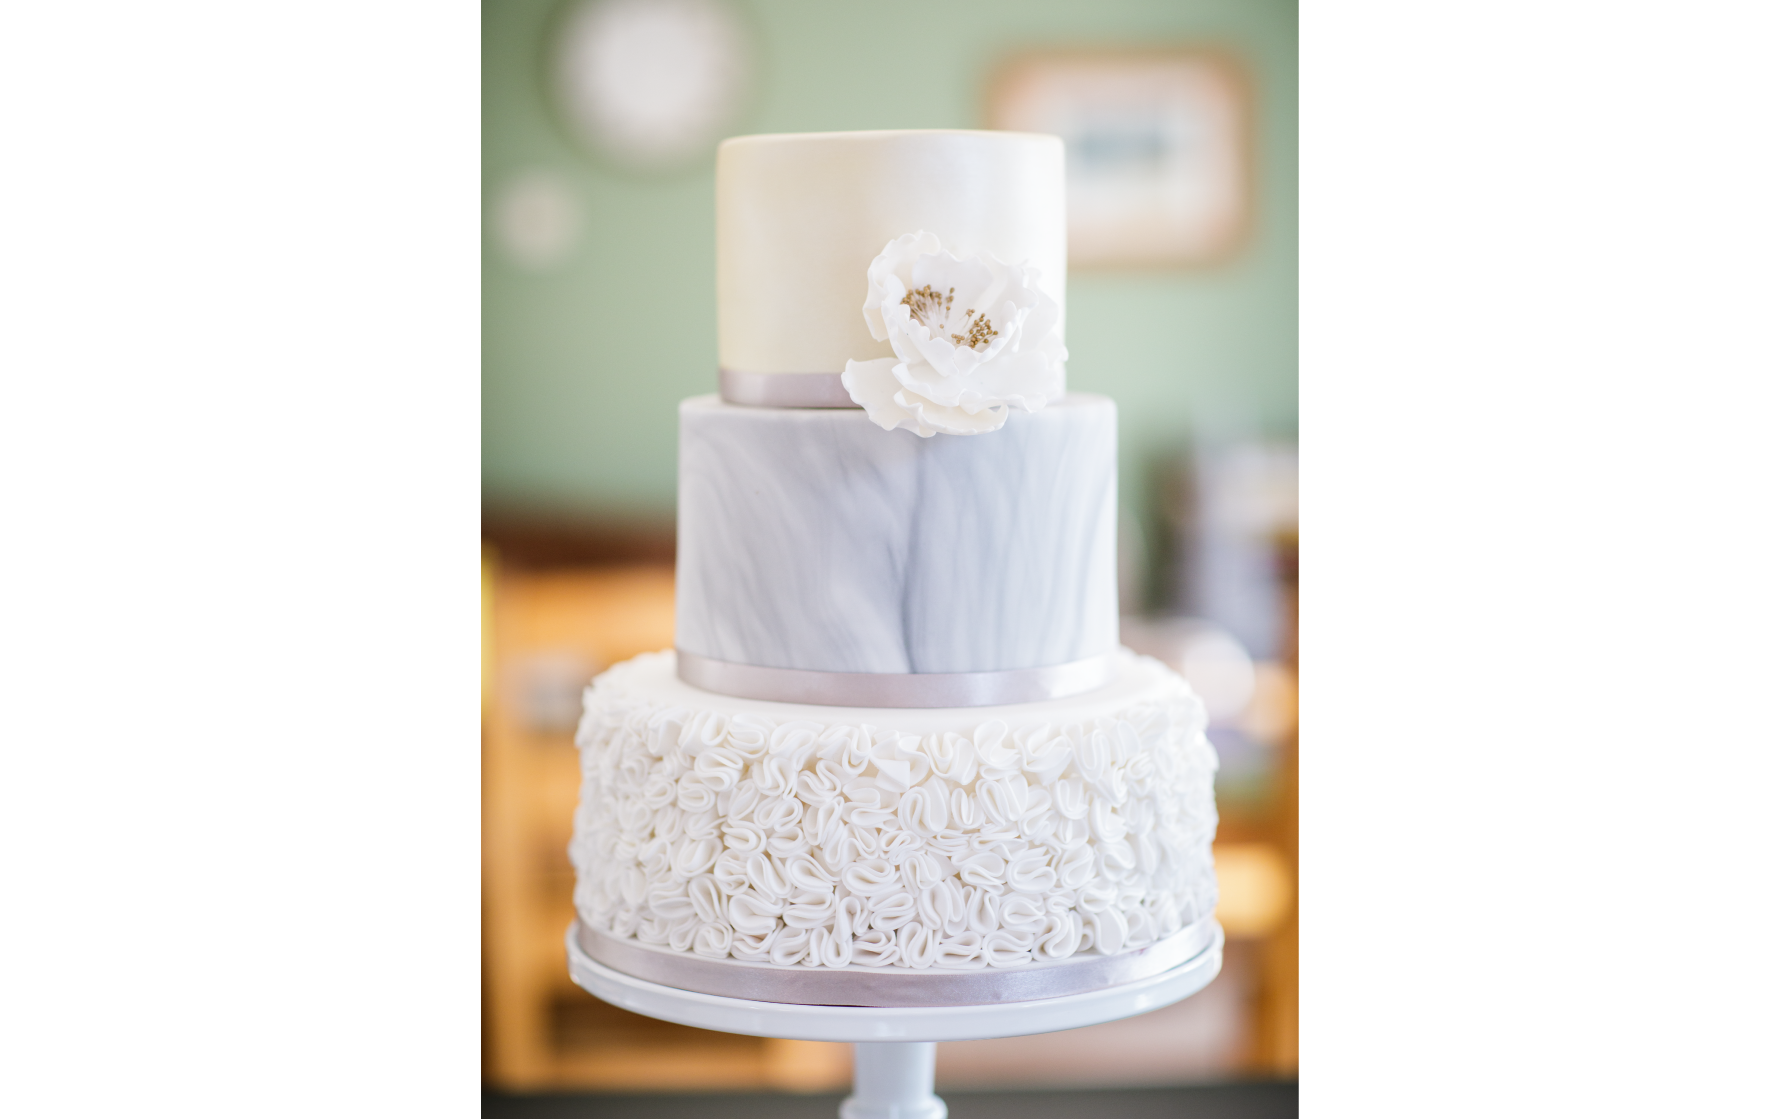 Marble and Ruffles Wedding Cake - Pat a Cakes Jersey